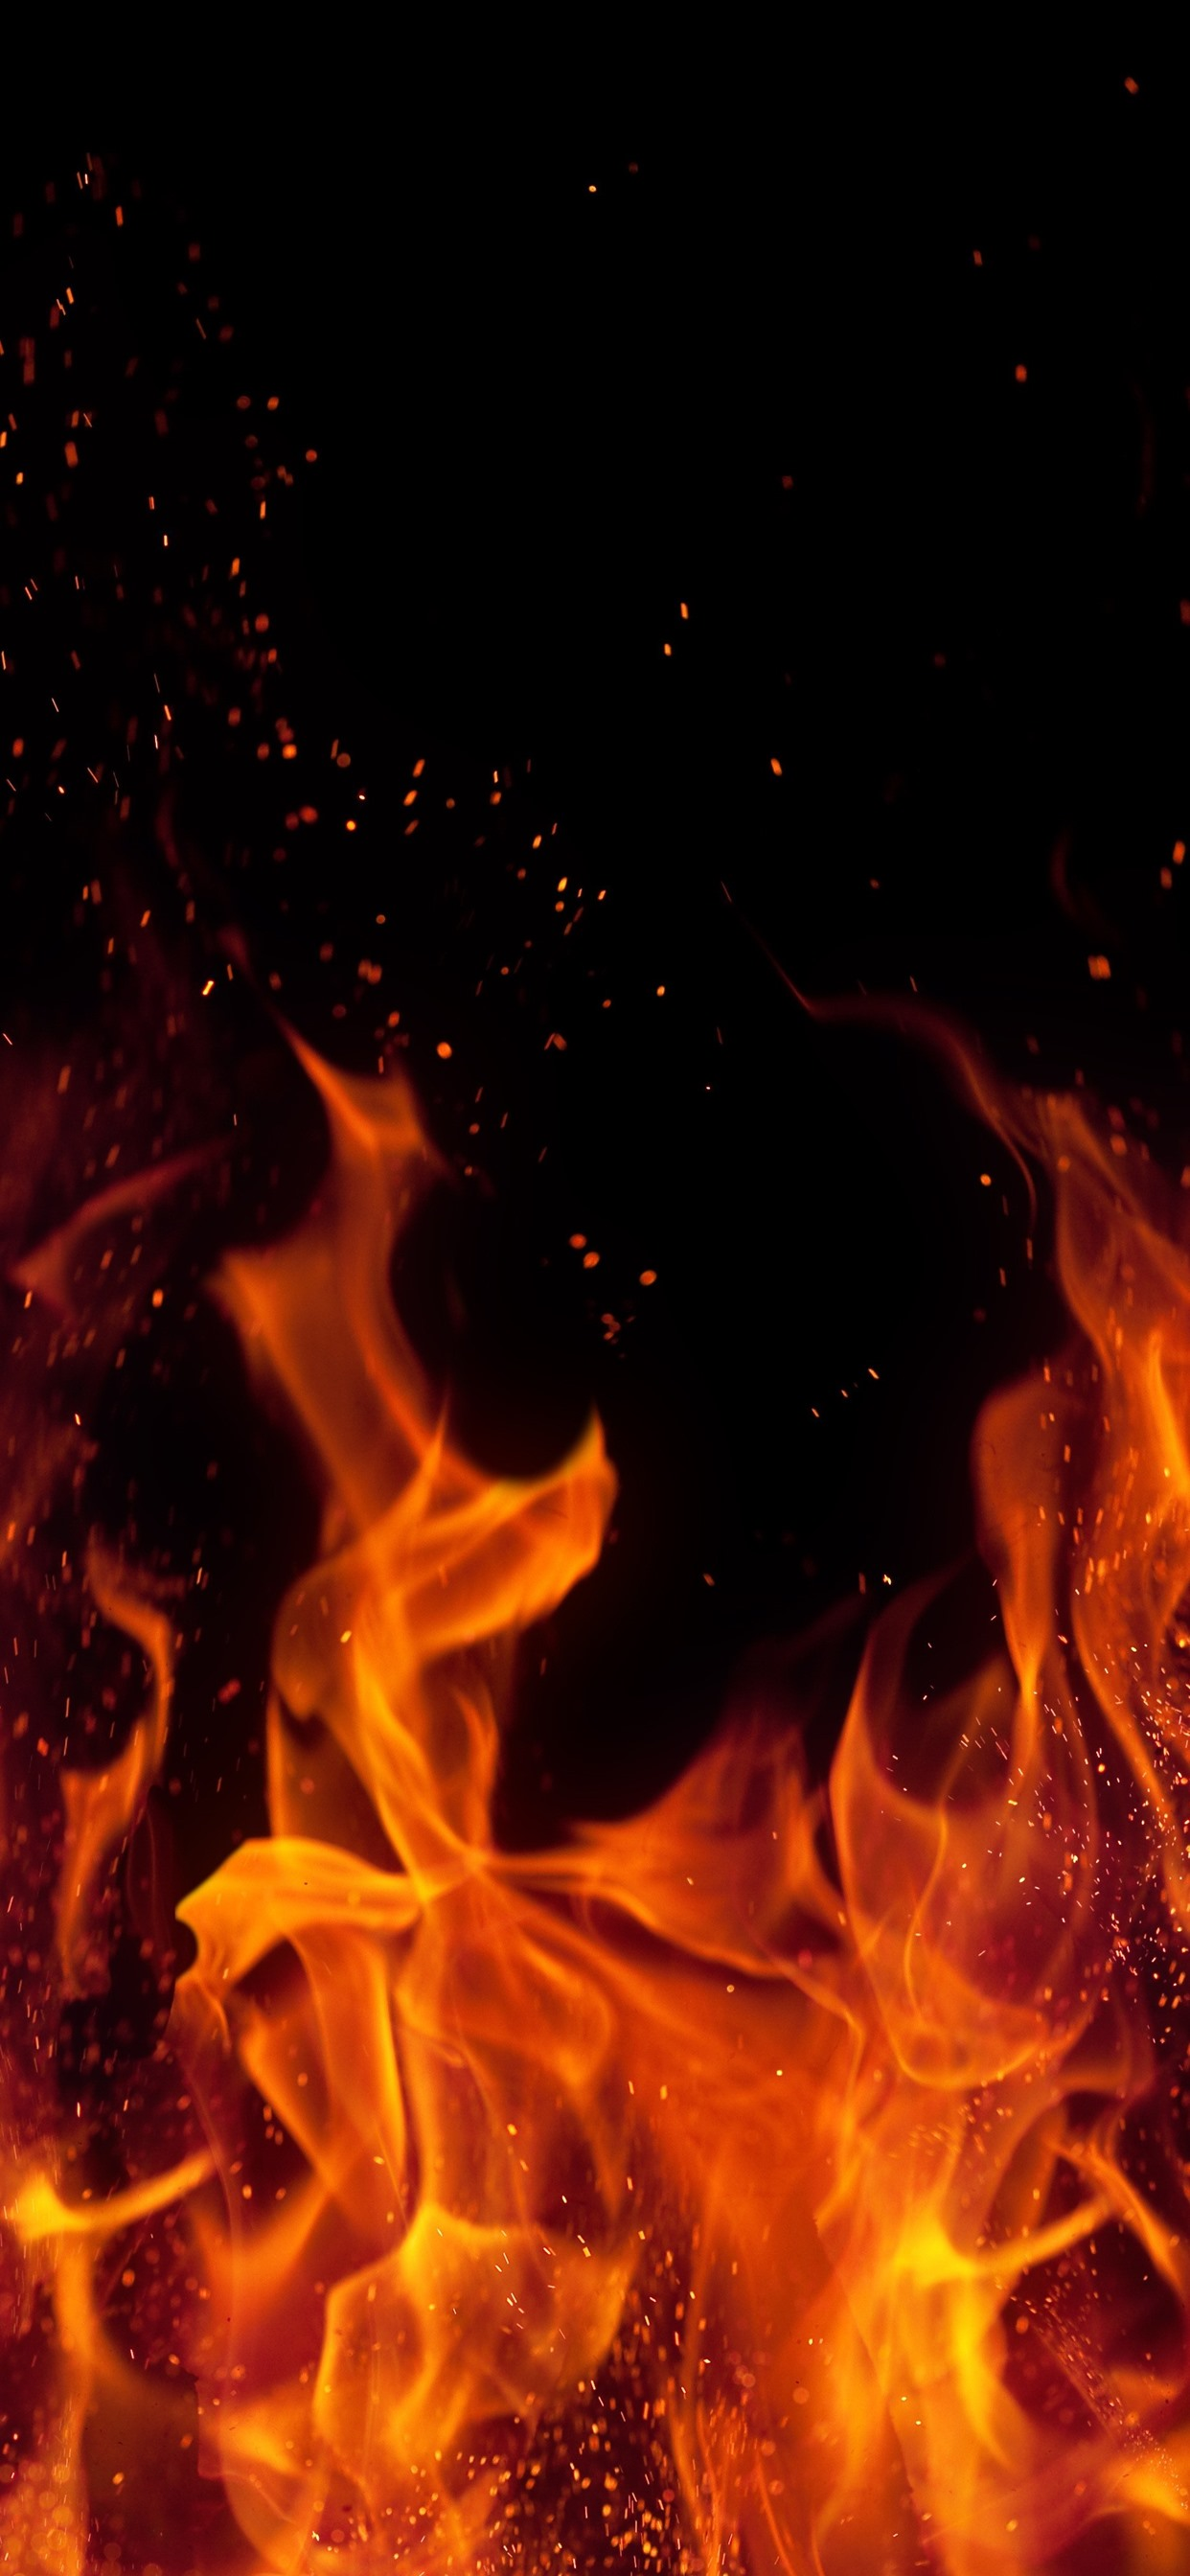 Flame Wallpaper Posted By Christopher Peltier